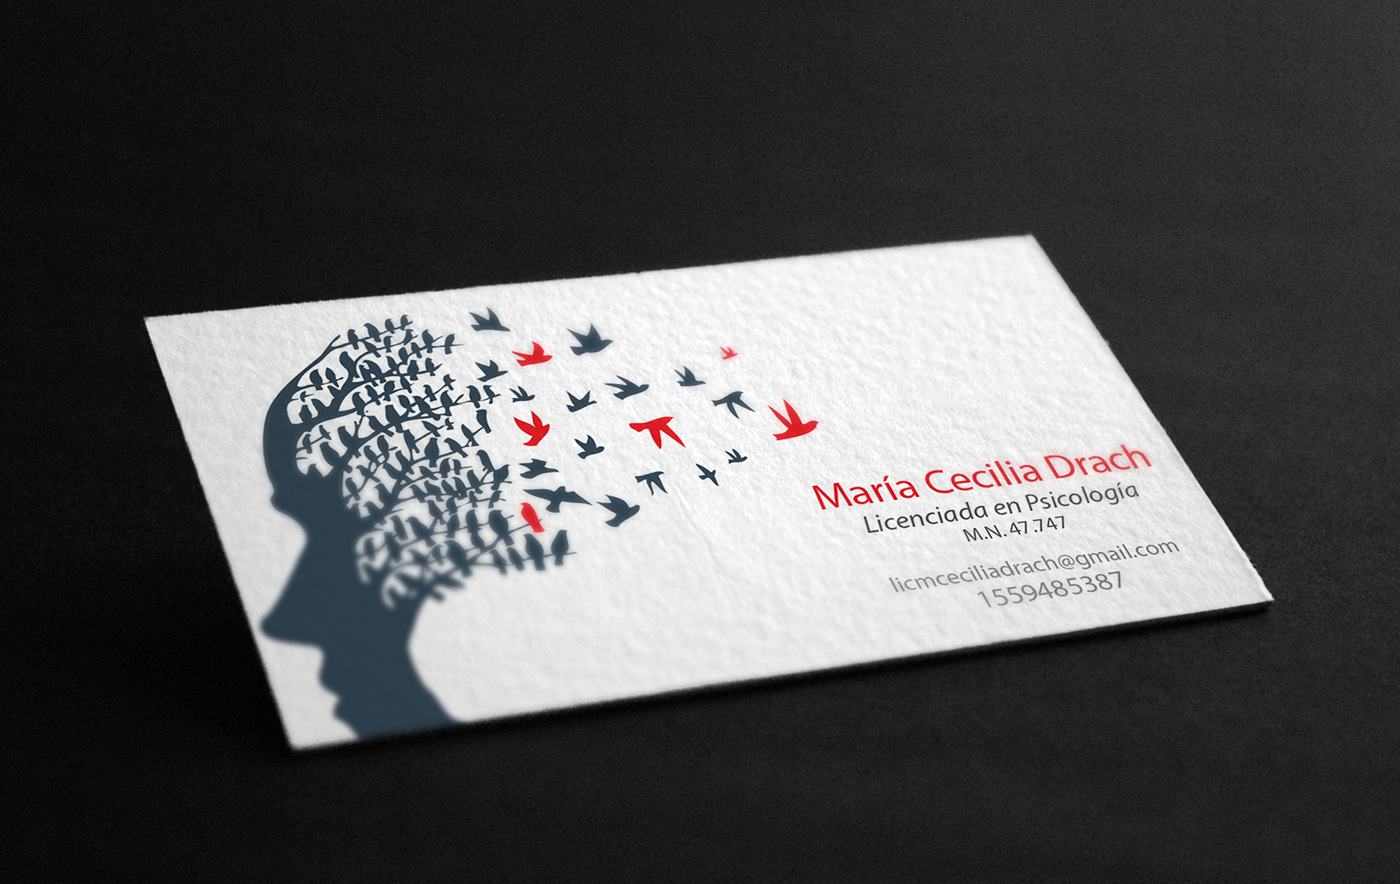 Business Card For A Psychologist On Behance Psychologist Business Card Psychology Business Card Psychotherapy Business Cards